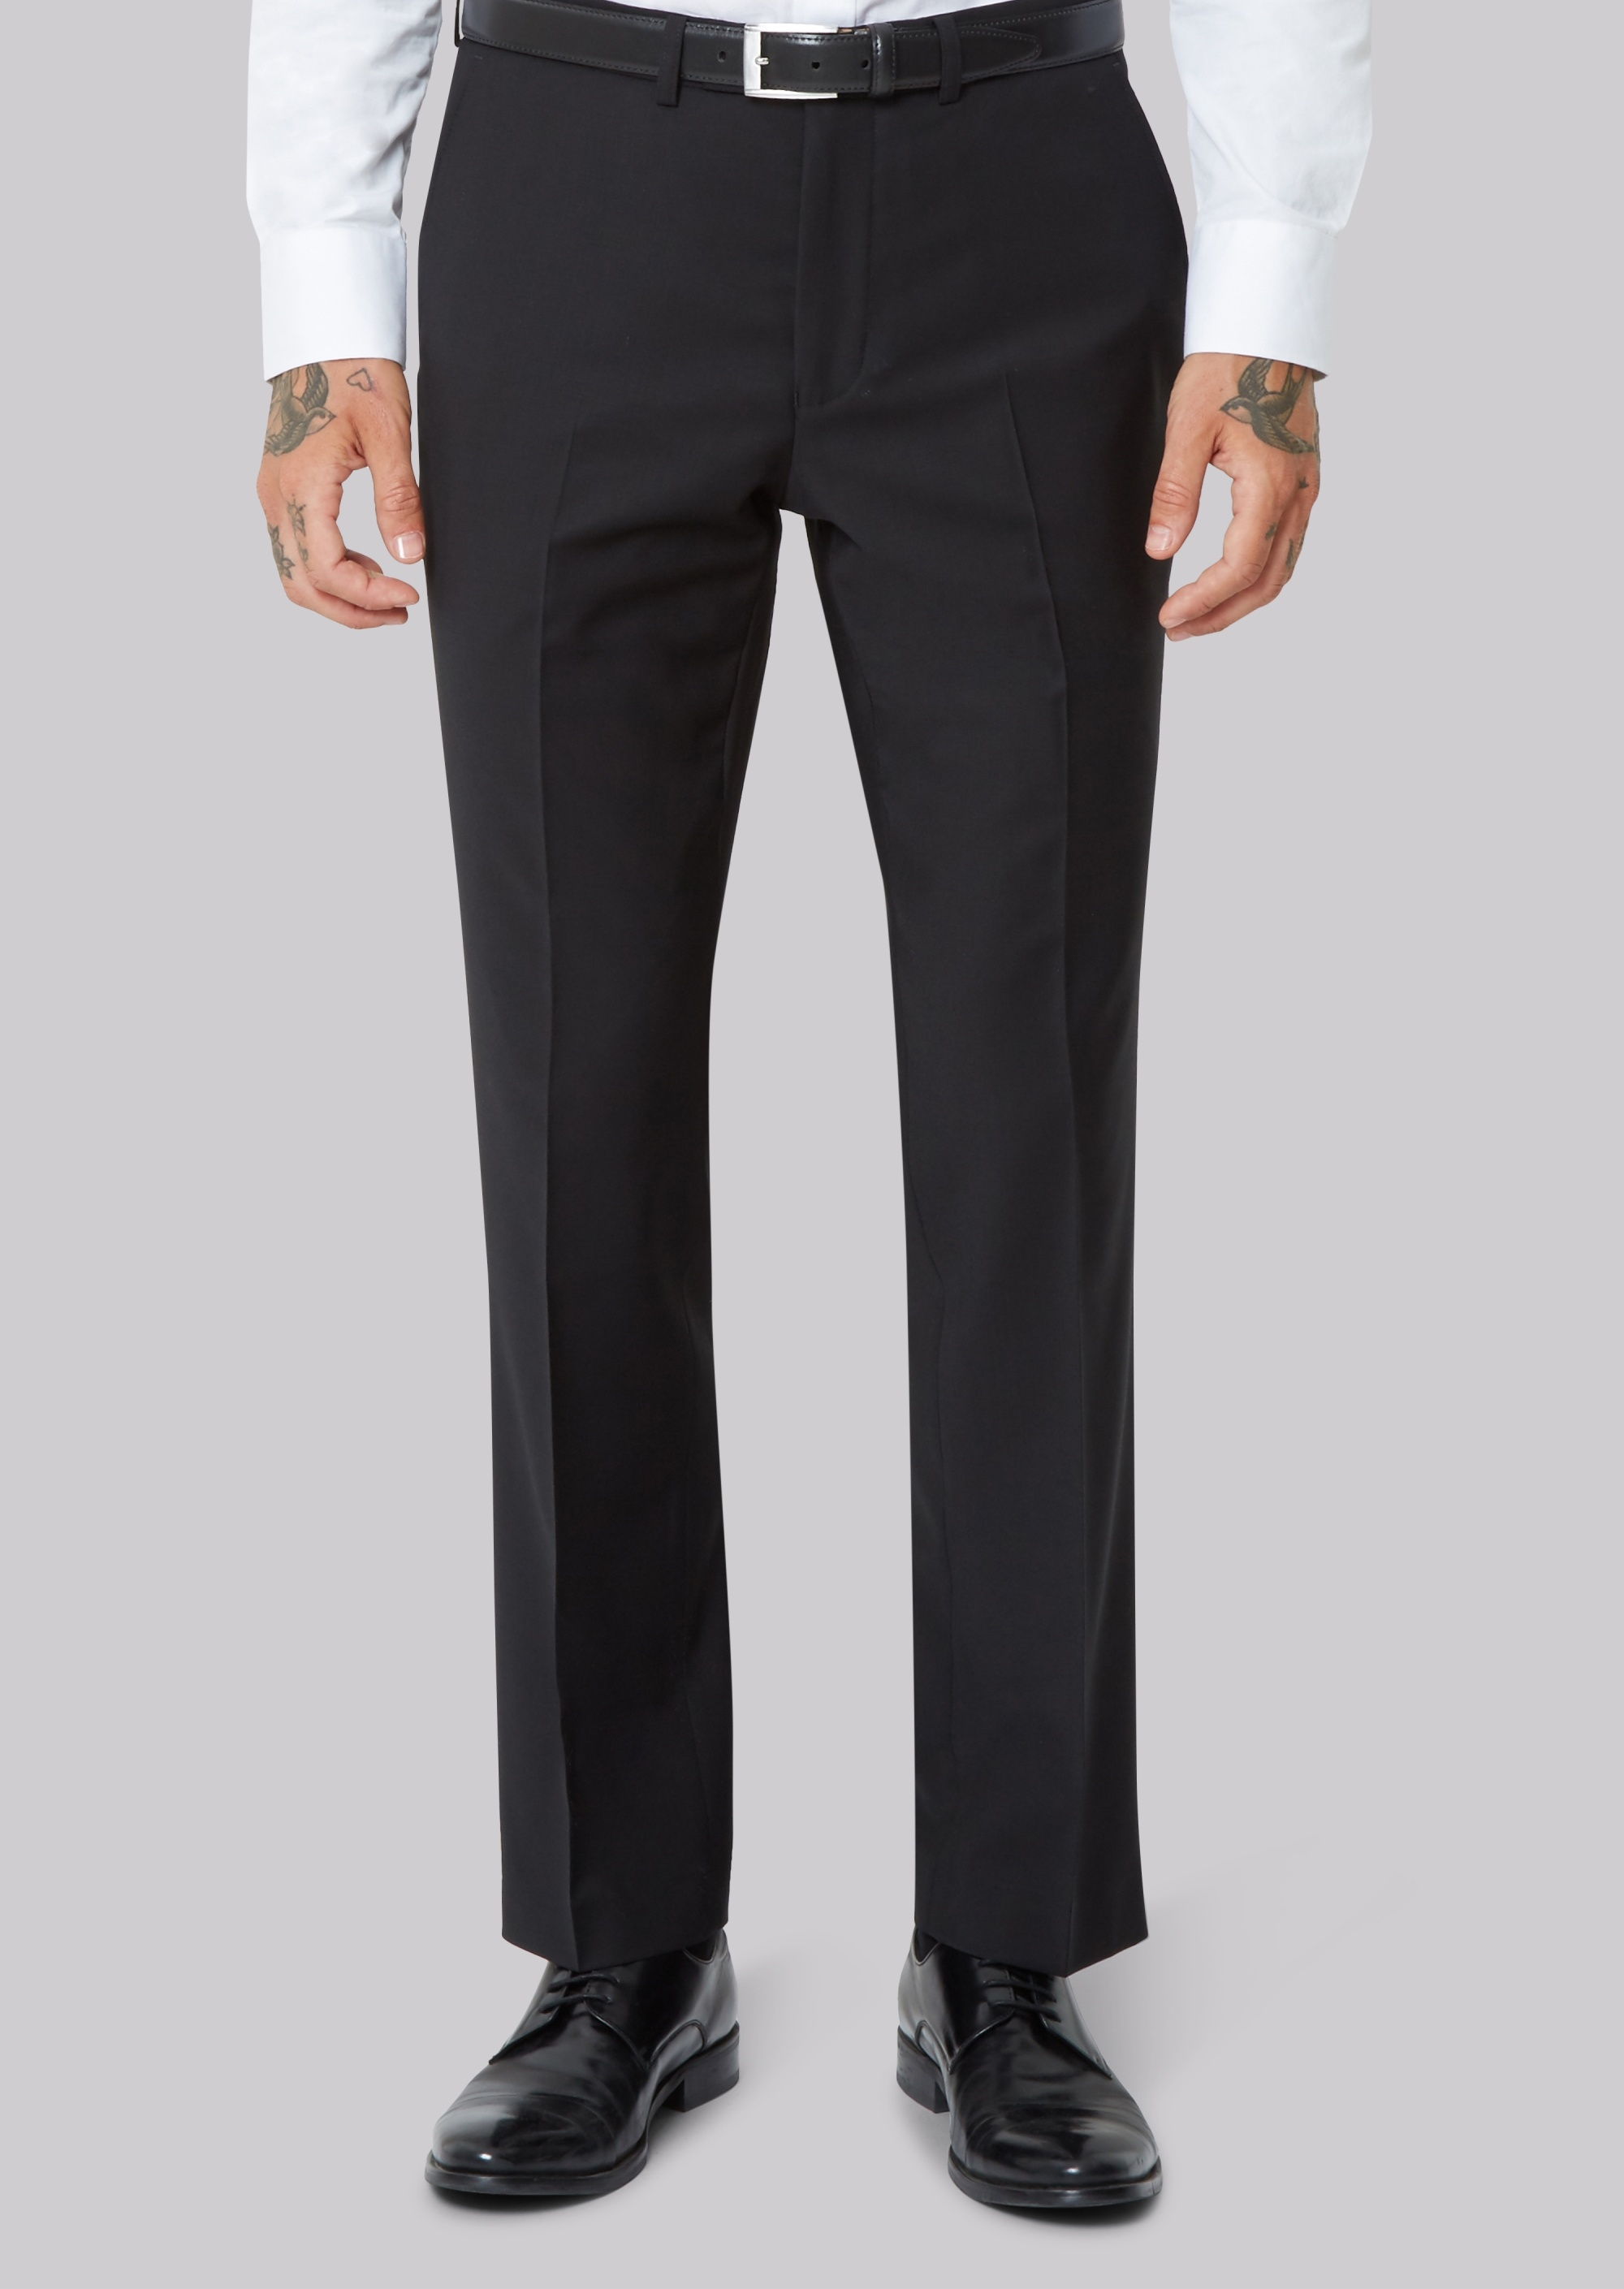 Moss Bros Moss 1851 Performance Tailored Fit Black Trousers